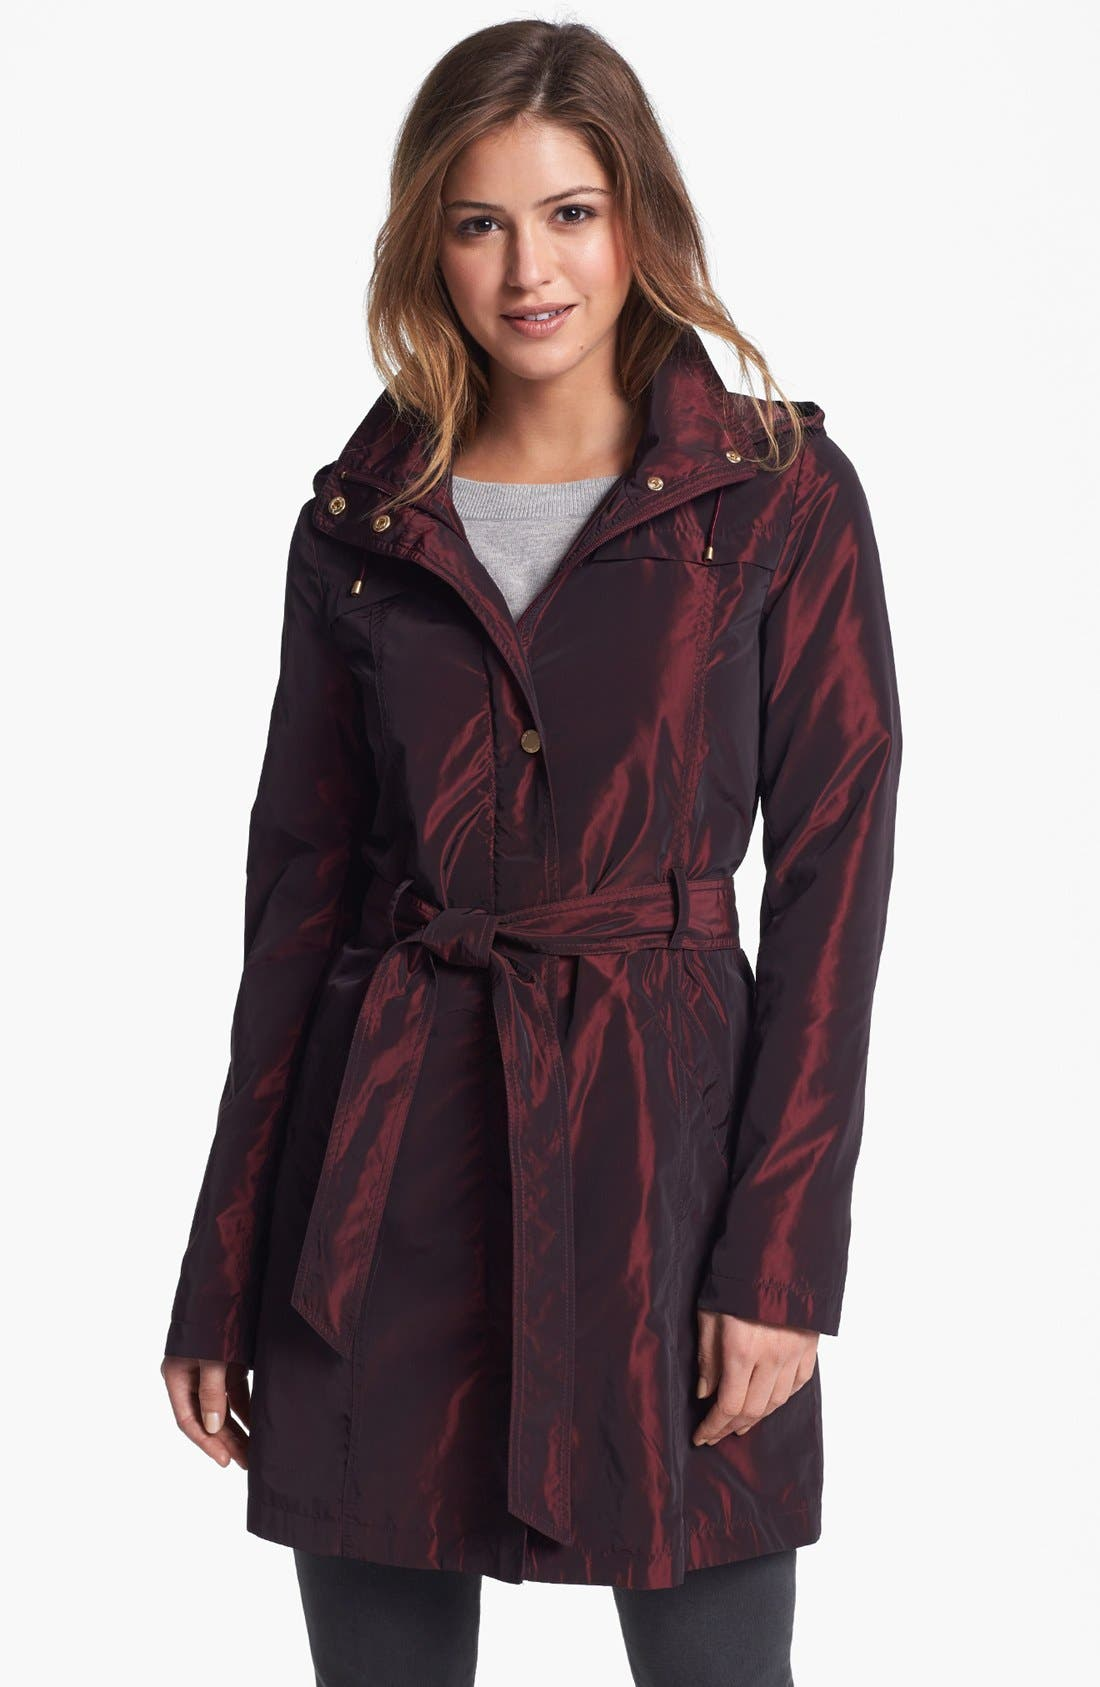 Alternate Image 1 Selected - Ellen Tracy Iridescent Packable Trench Coat